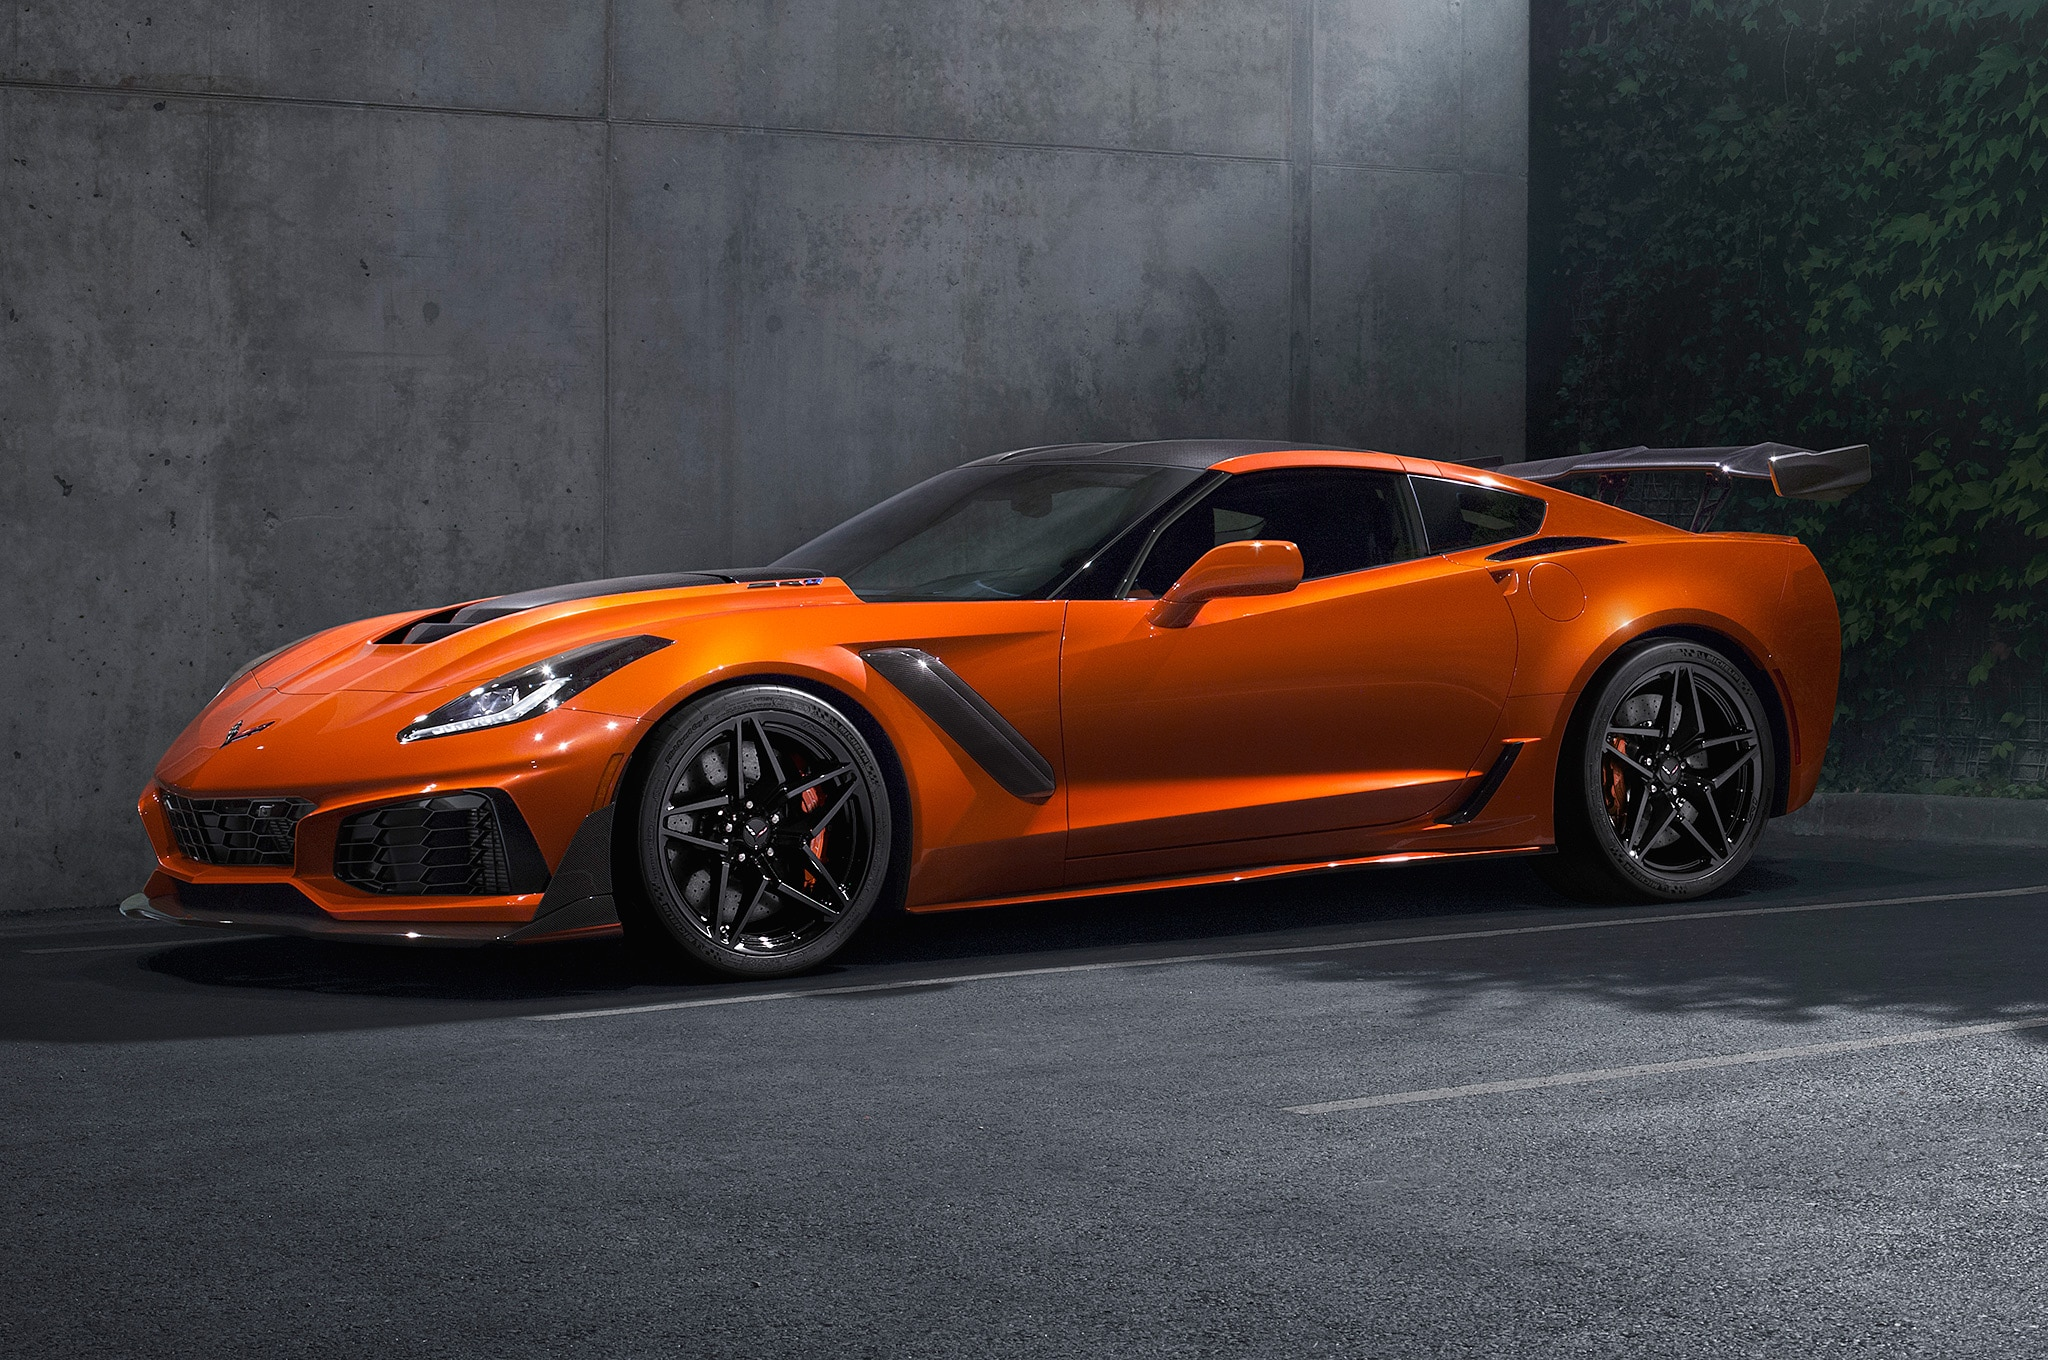 Chevrolet unveils most powerful, fastest Corvette in history